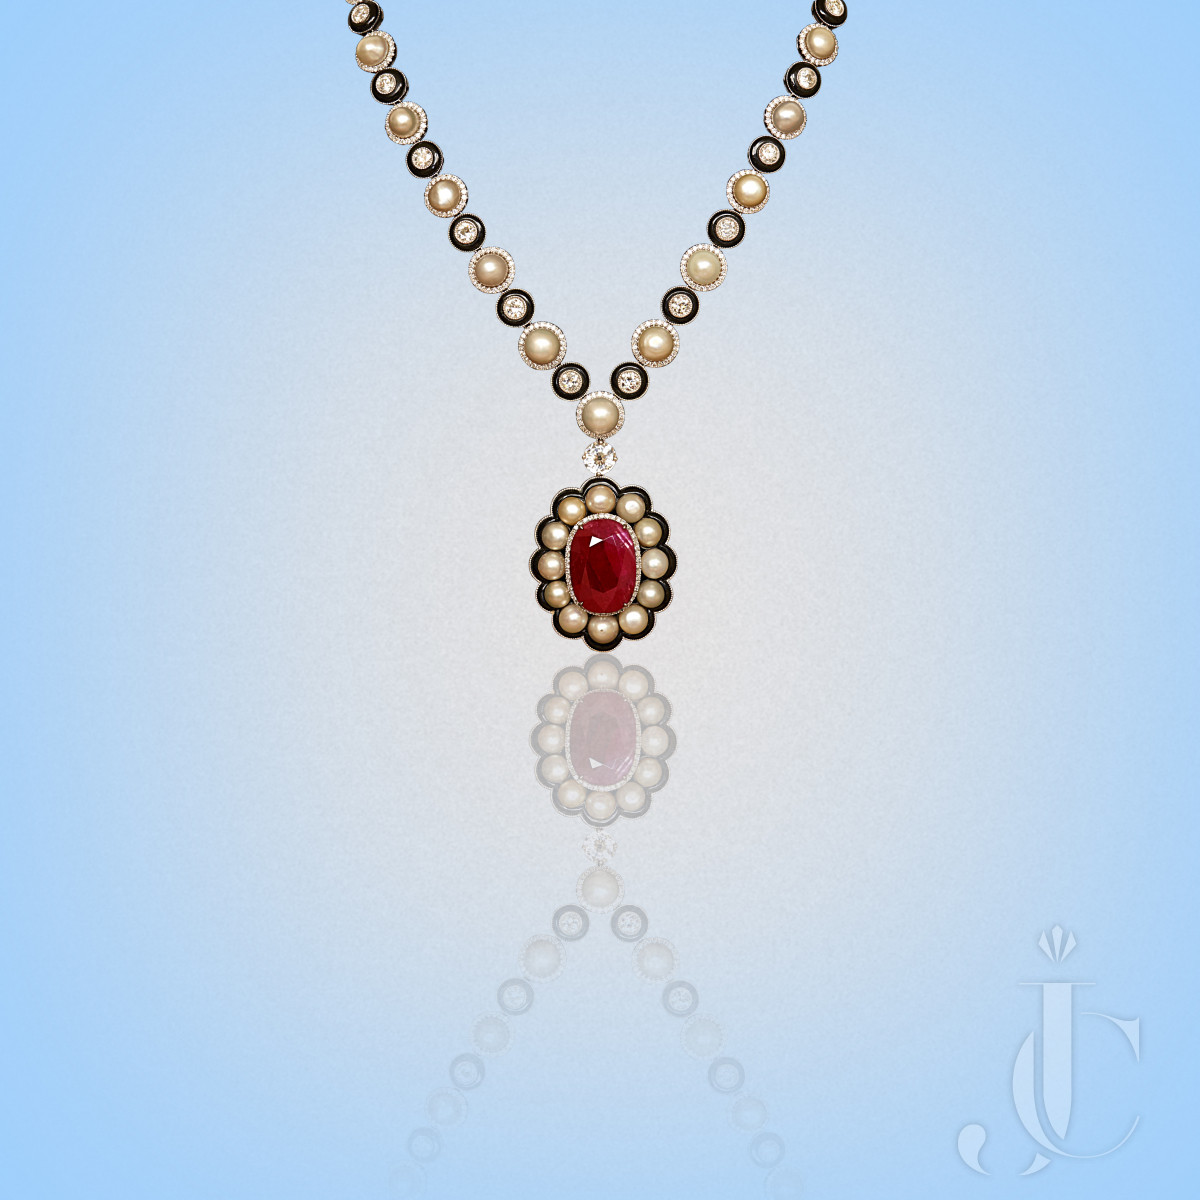 Natural Burma Ruby Oval With Basra Pearls & Black Onyx with Diamond Necklace